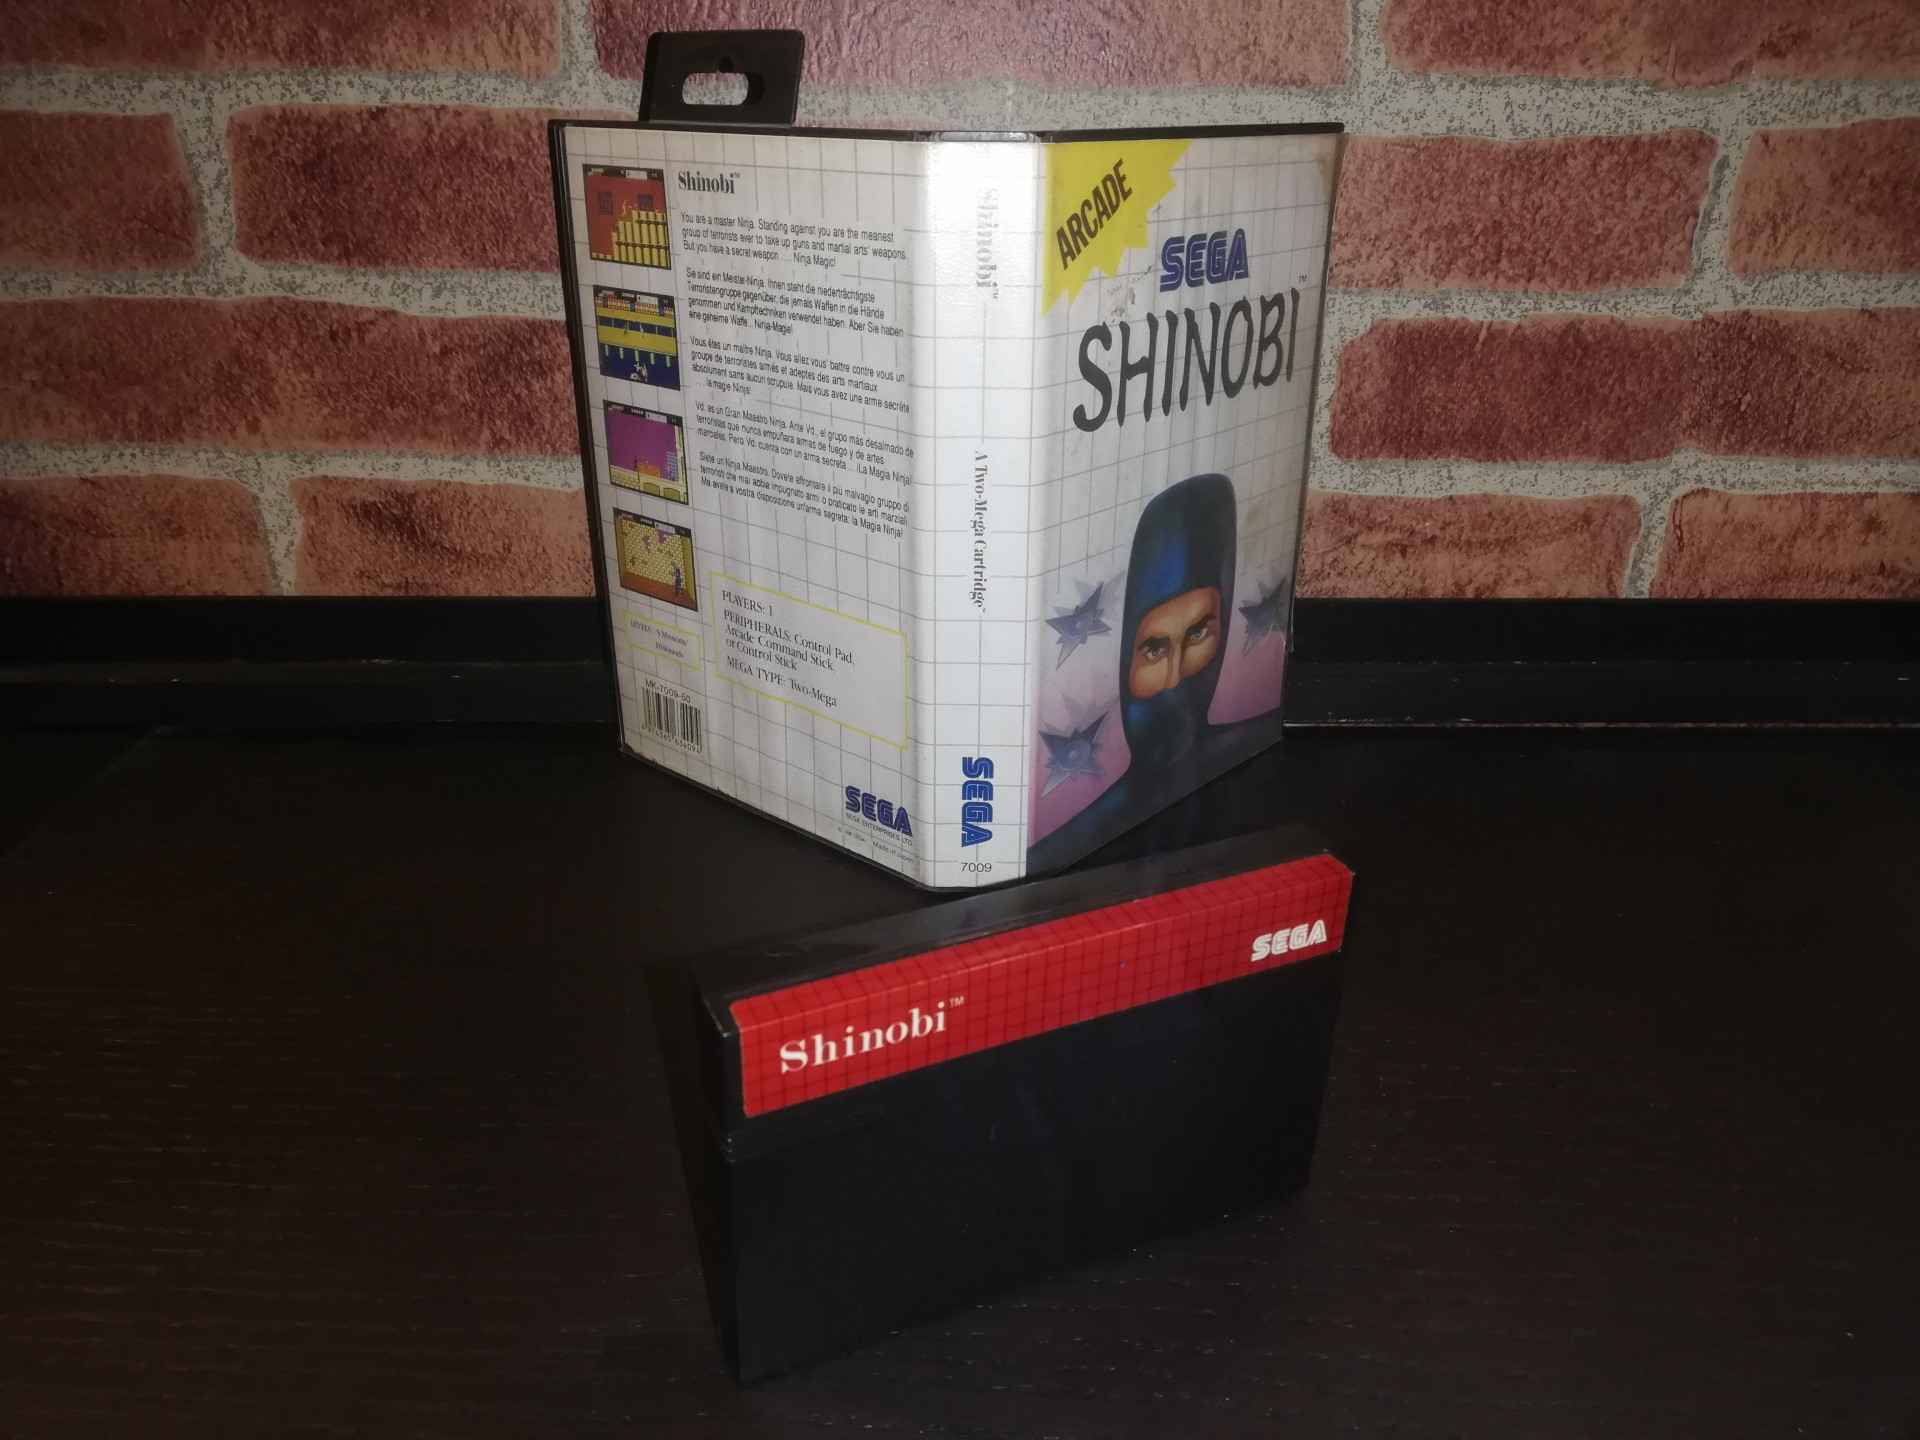 Shinobi [Sem Manual] - SMS